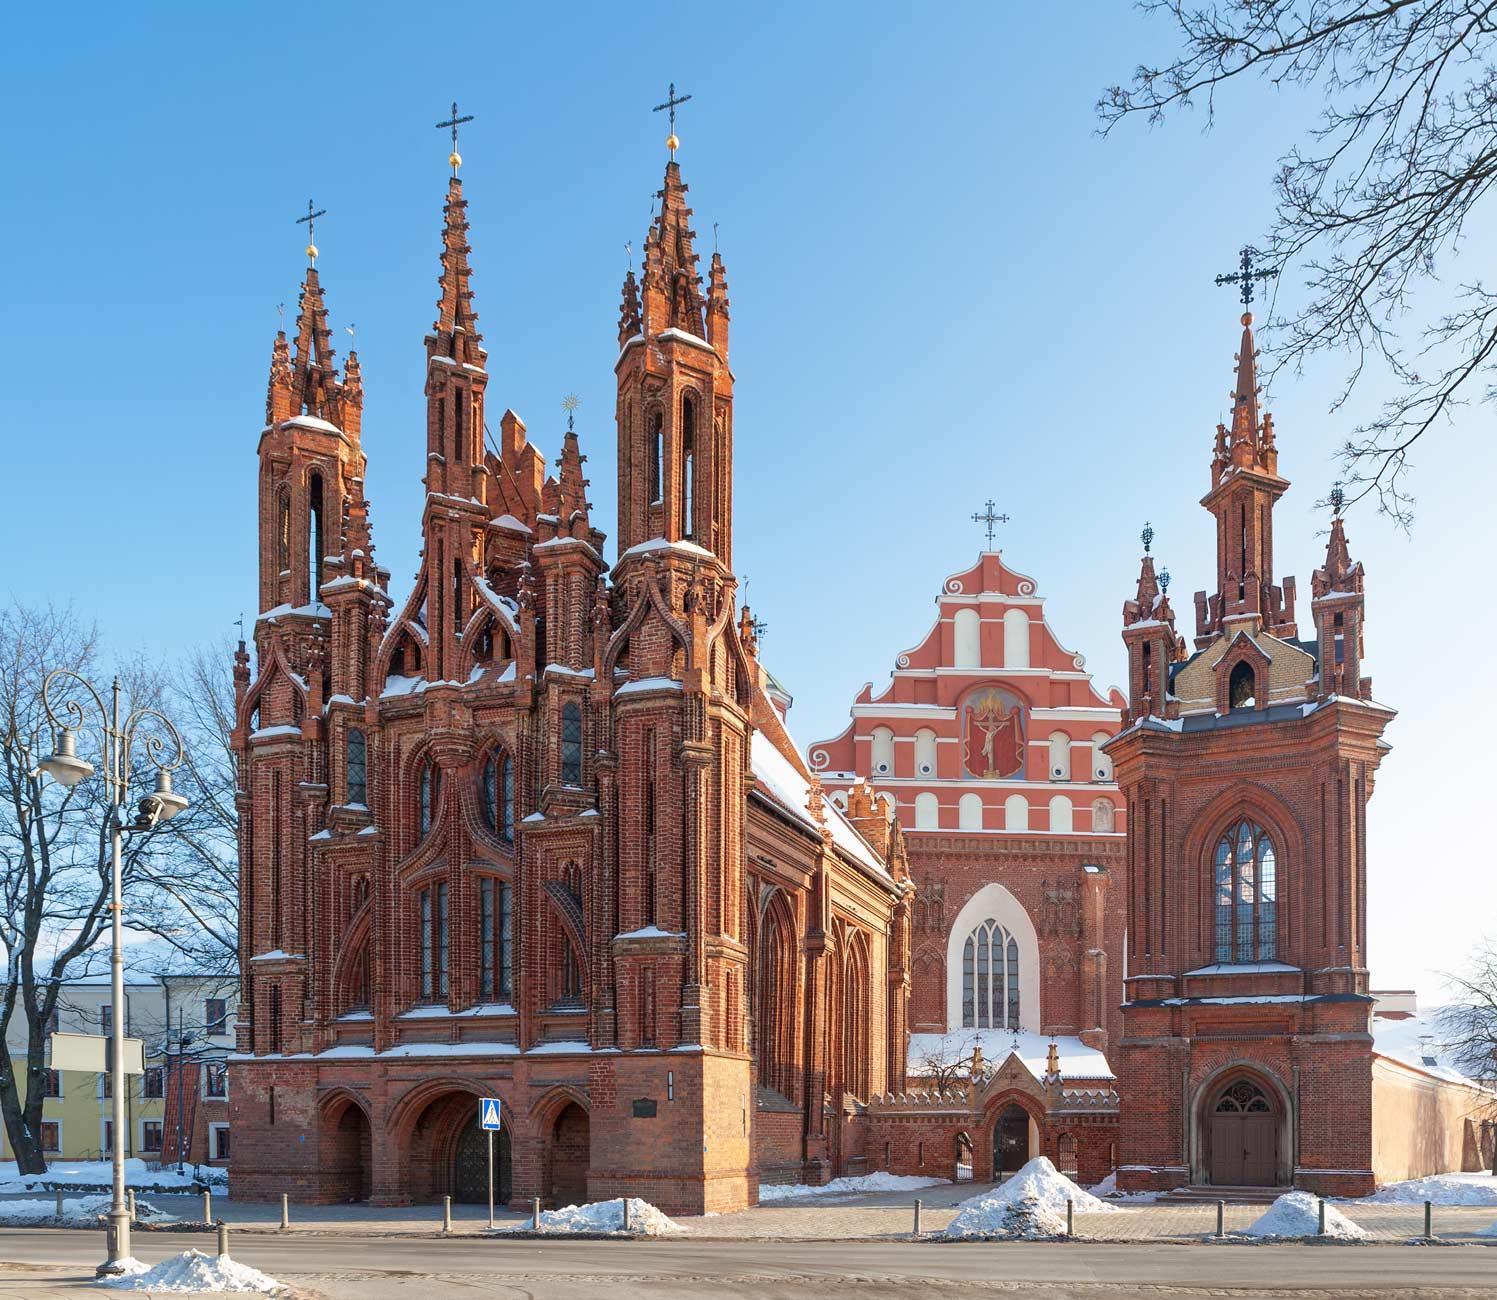 St. Anne's and St. Francis and St. Bernardino Churches - a landmark in Vilnius, The capital of Lithuania